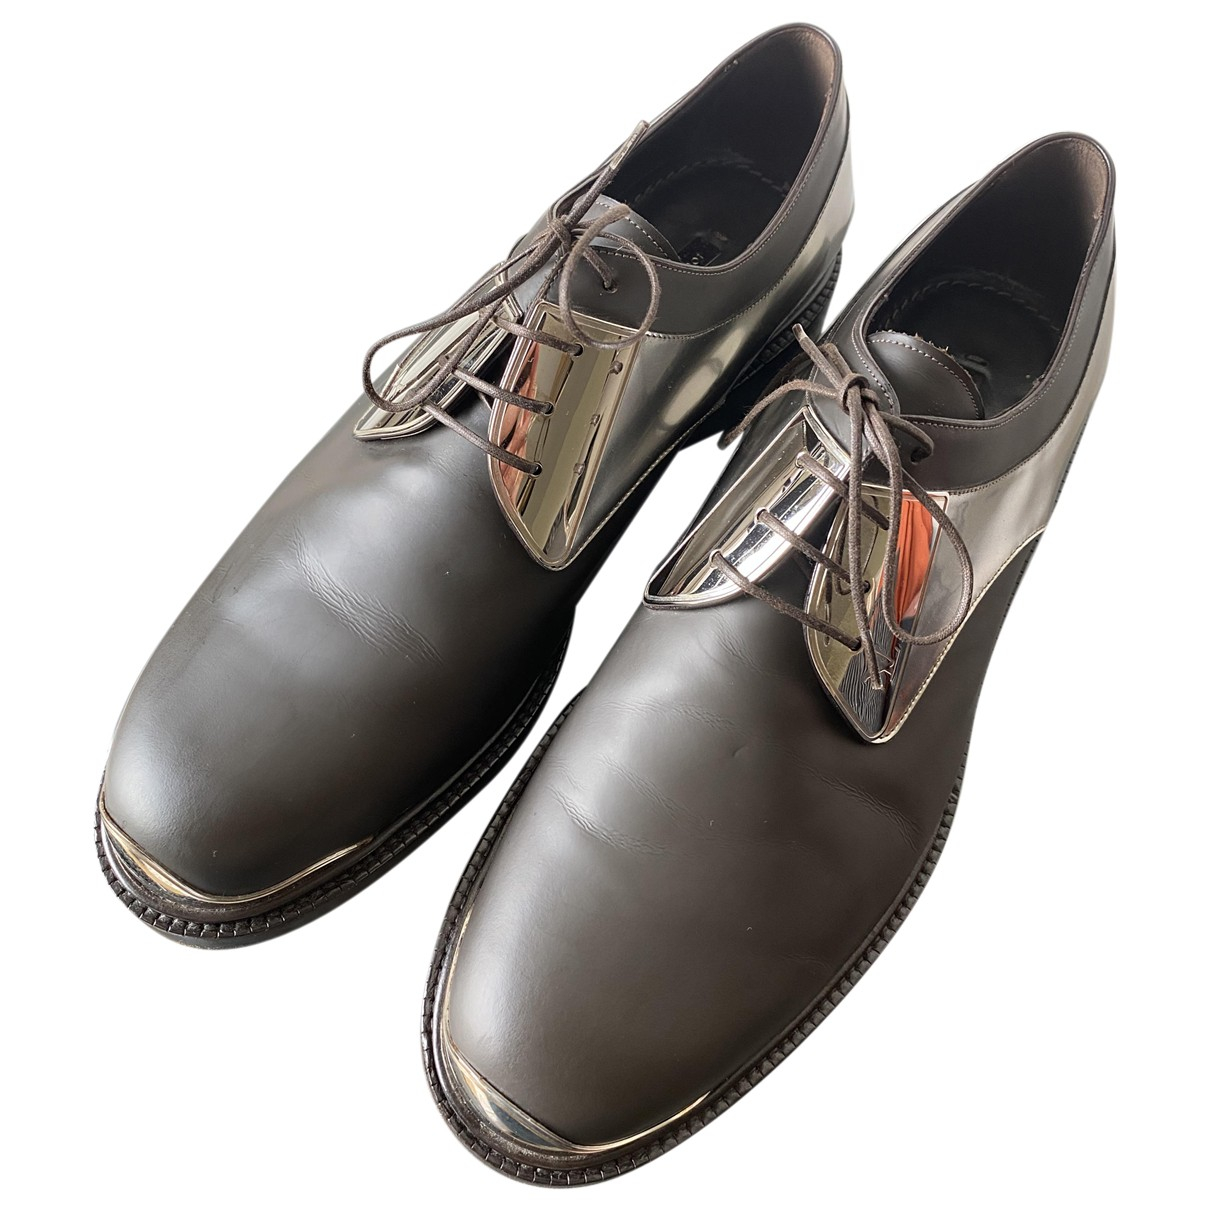 Louis Vuitton N Brown Leather Lace ups for Men 8 UK